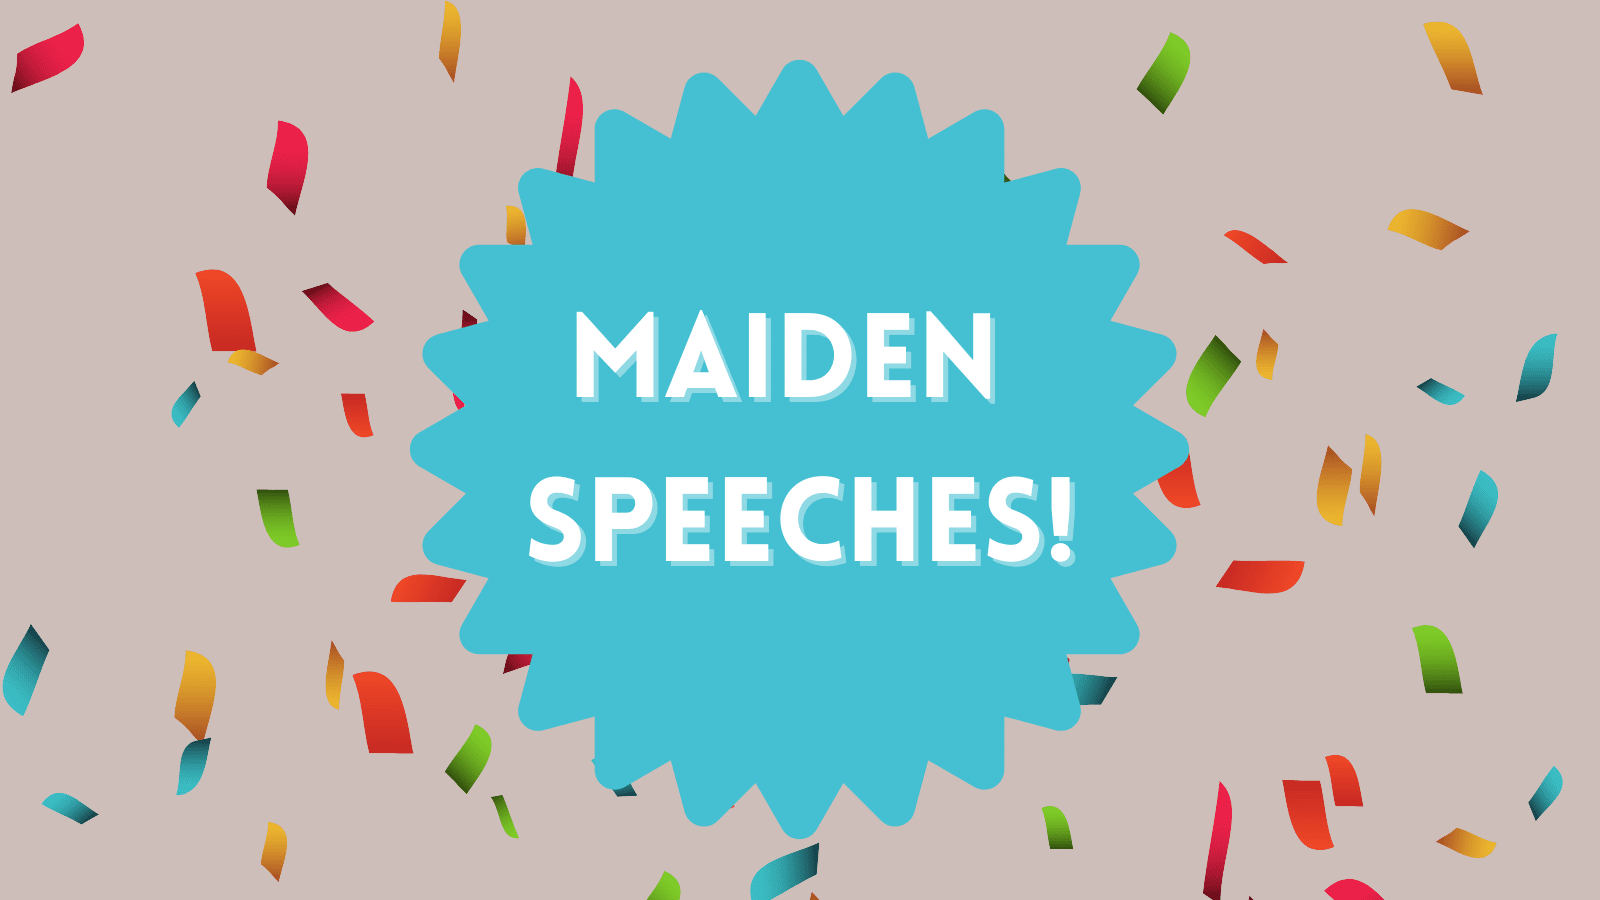 Applause for maiden speeches